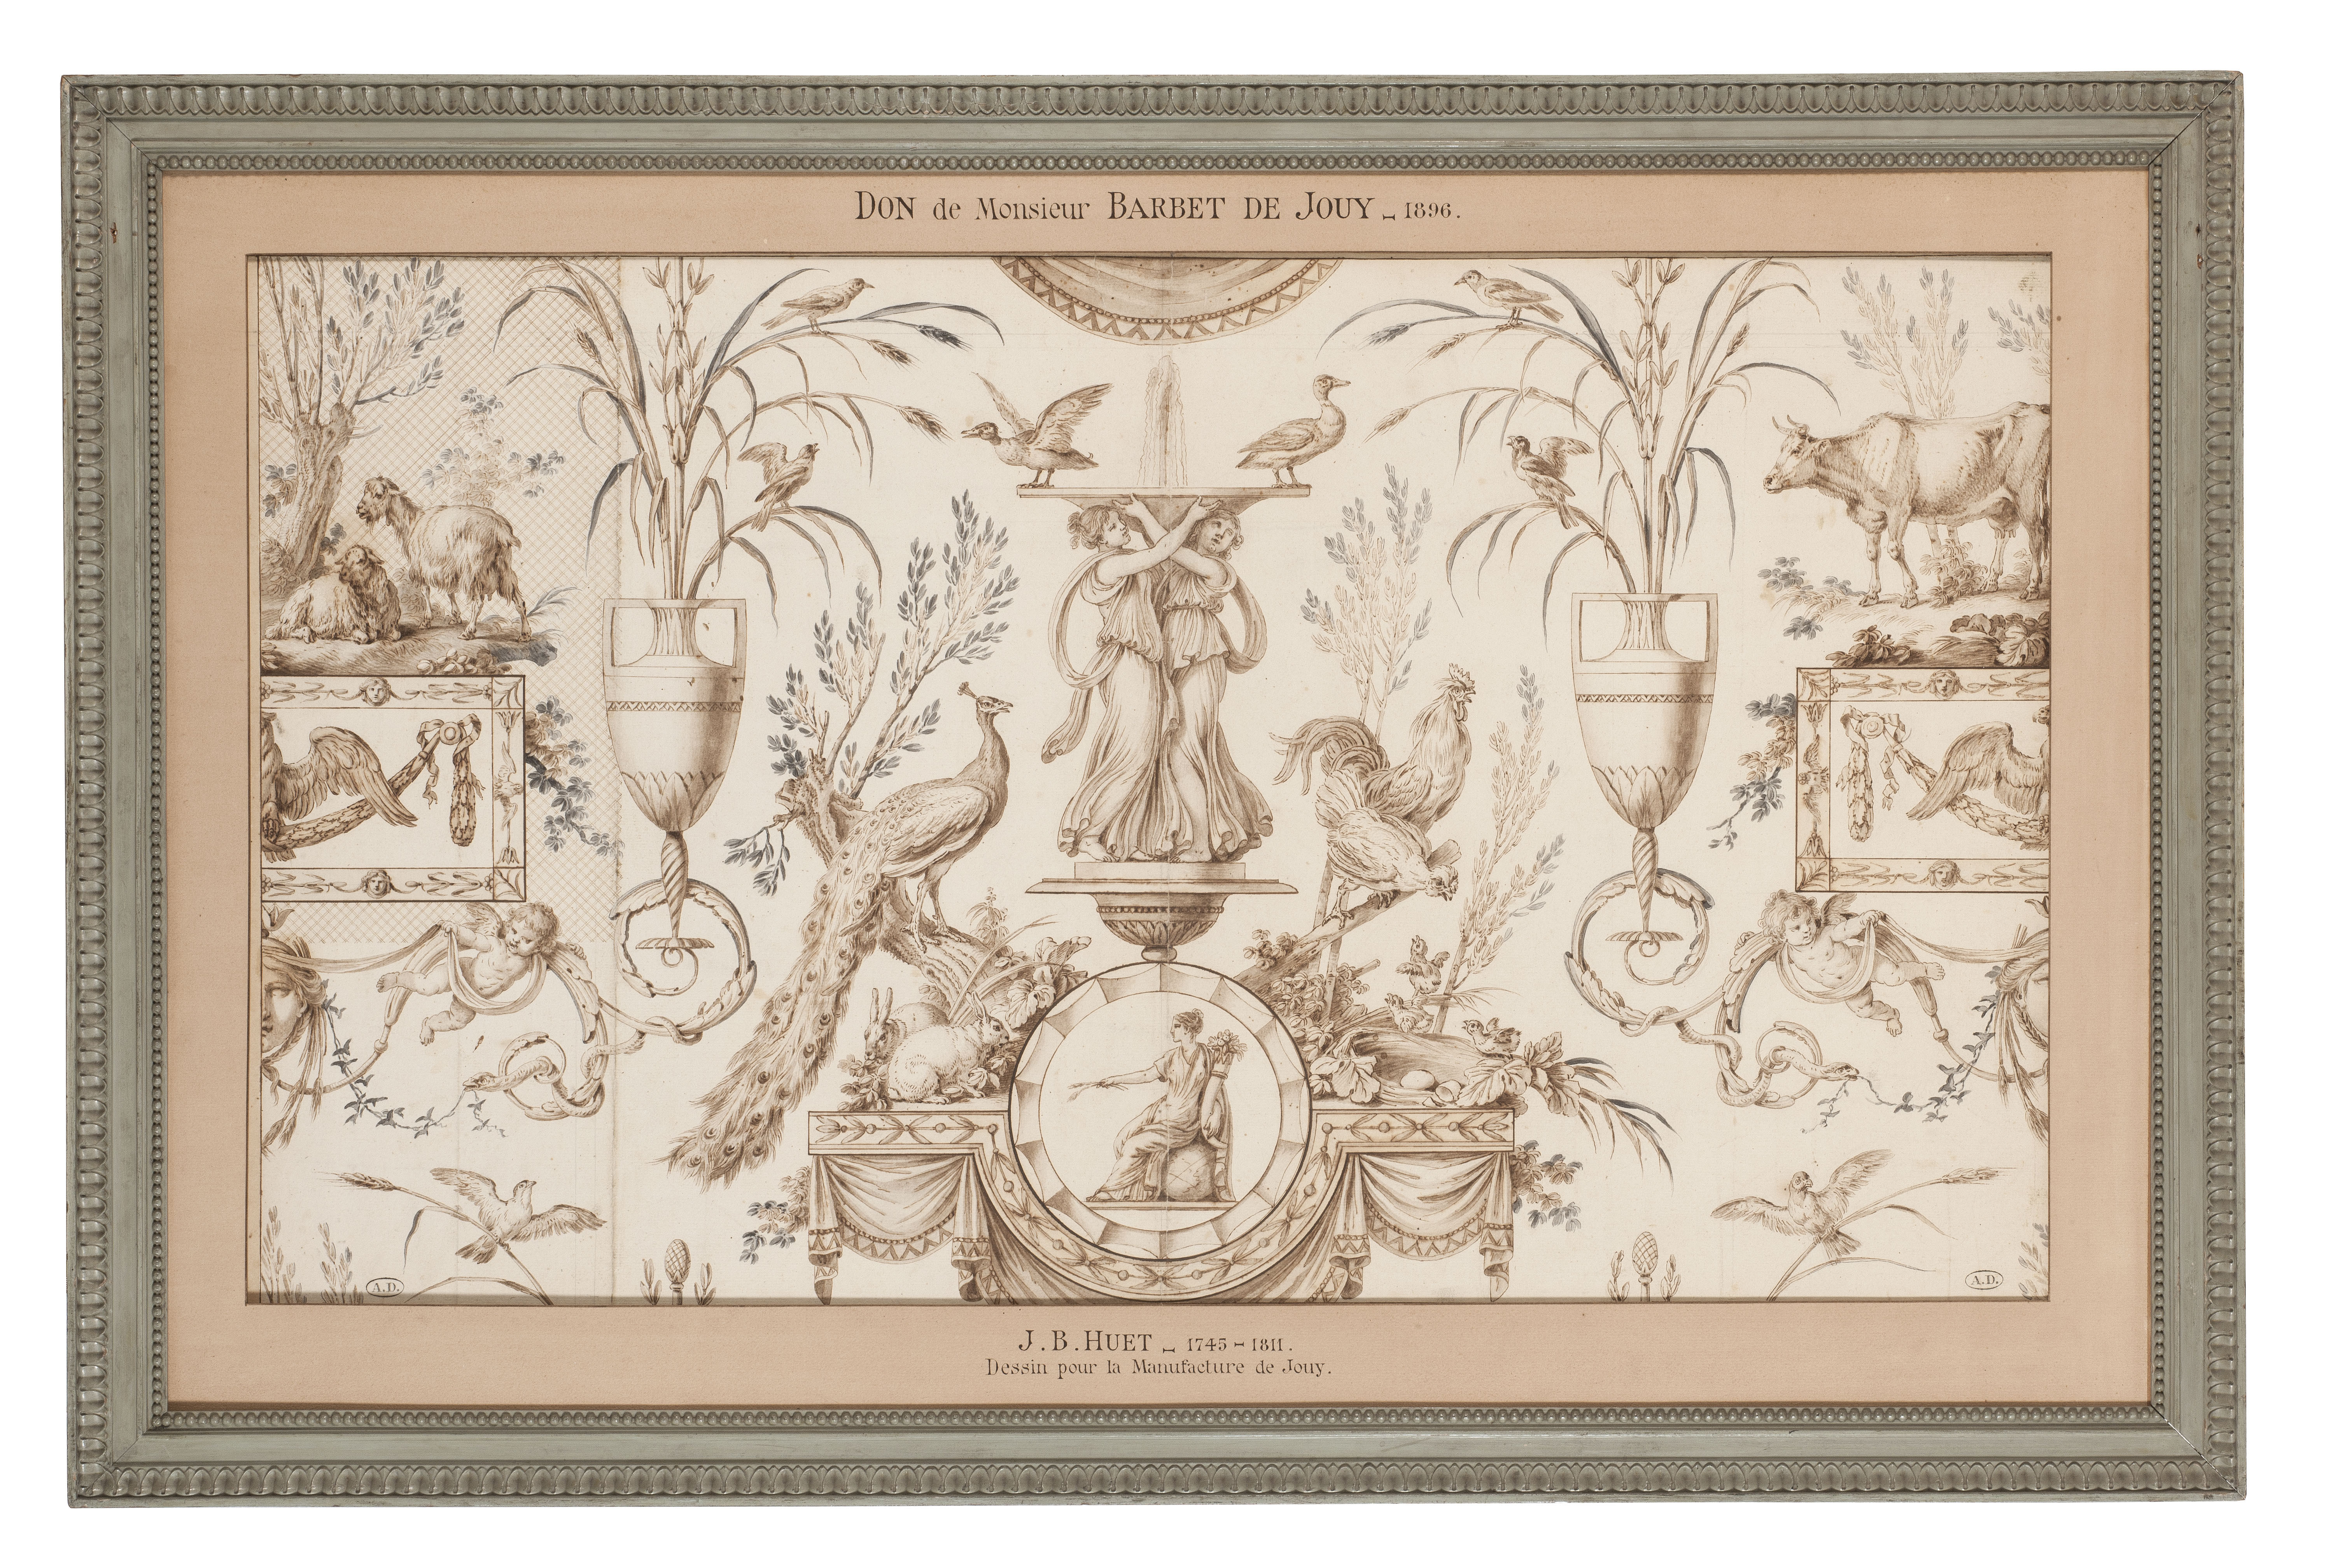 model for a toile de Jouy, Escarpolette, grisaille, © Les Arts décoratifs, Paris/Jean Tholance